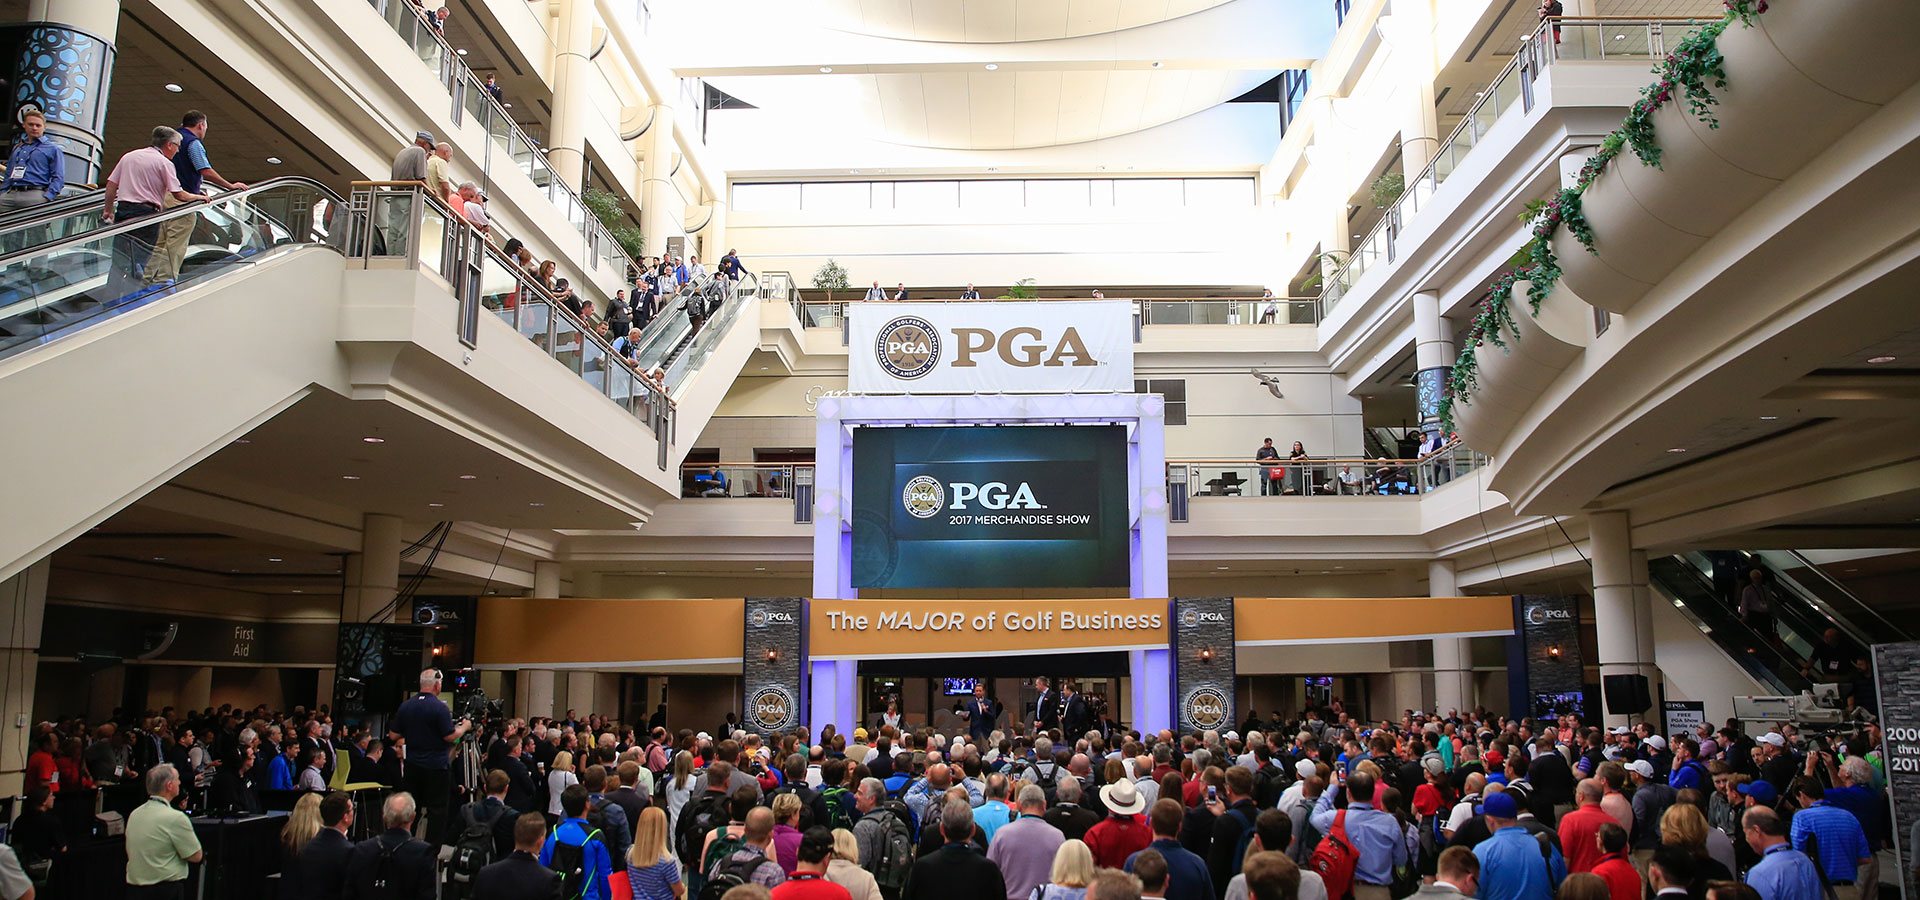 2020 Pga Show.An Early Look At The 2020 Pga Merchandise Show